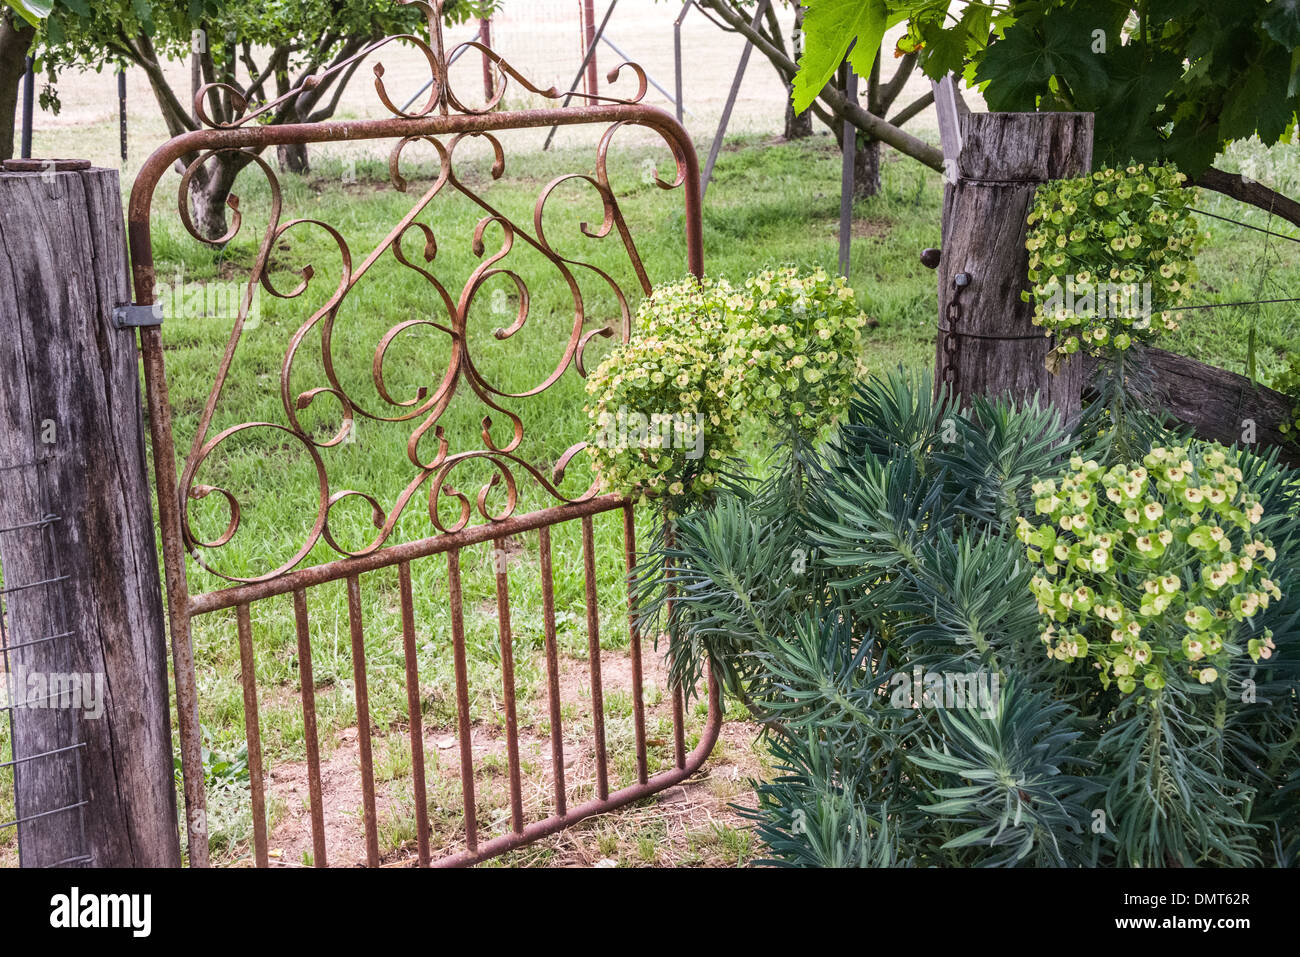 Old Garden Gate Iron On Farm With Herbs Surrounding Leading To Fruit  Orchard   Stock Image